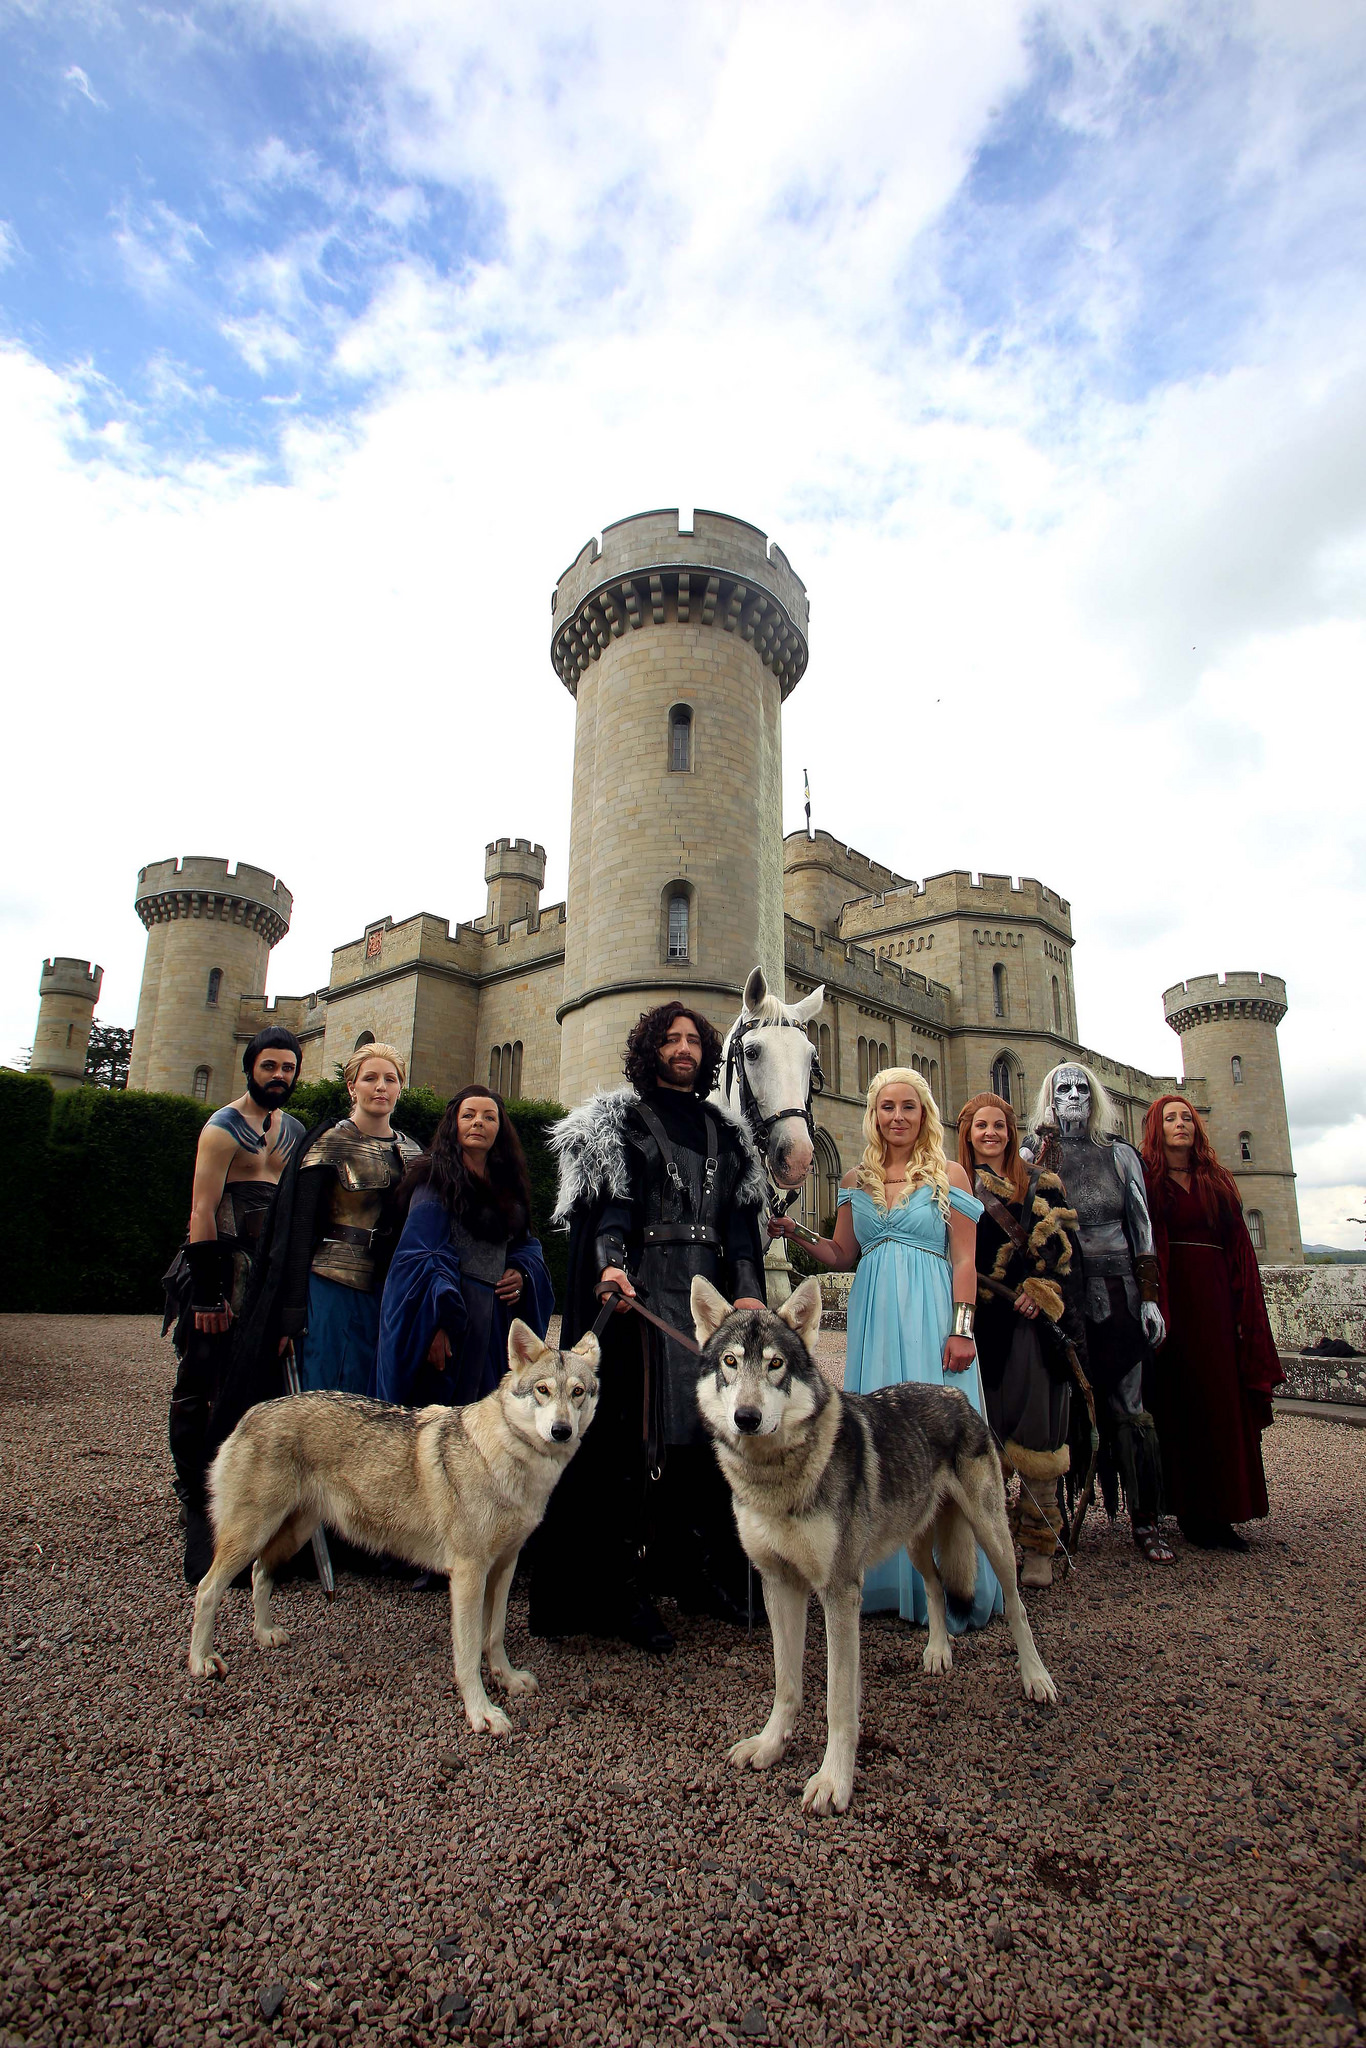 Game of Thrones wedding photos by Geoff Caddick